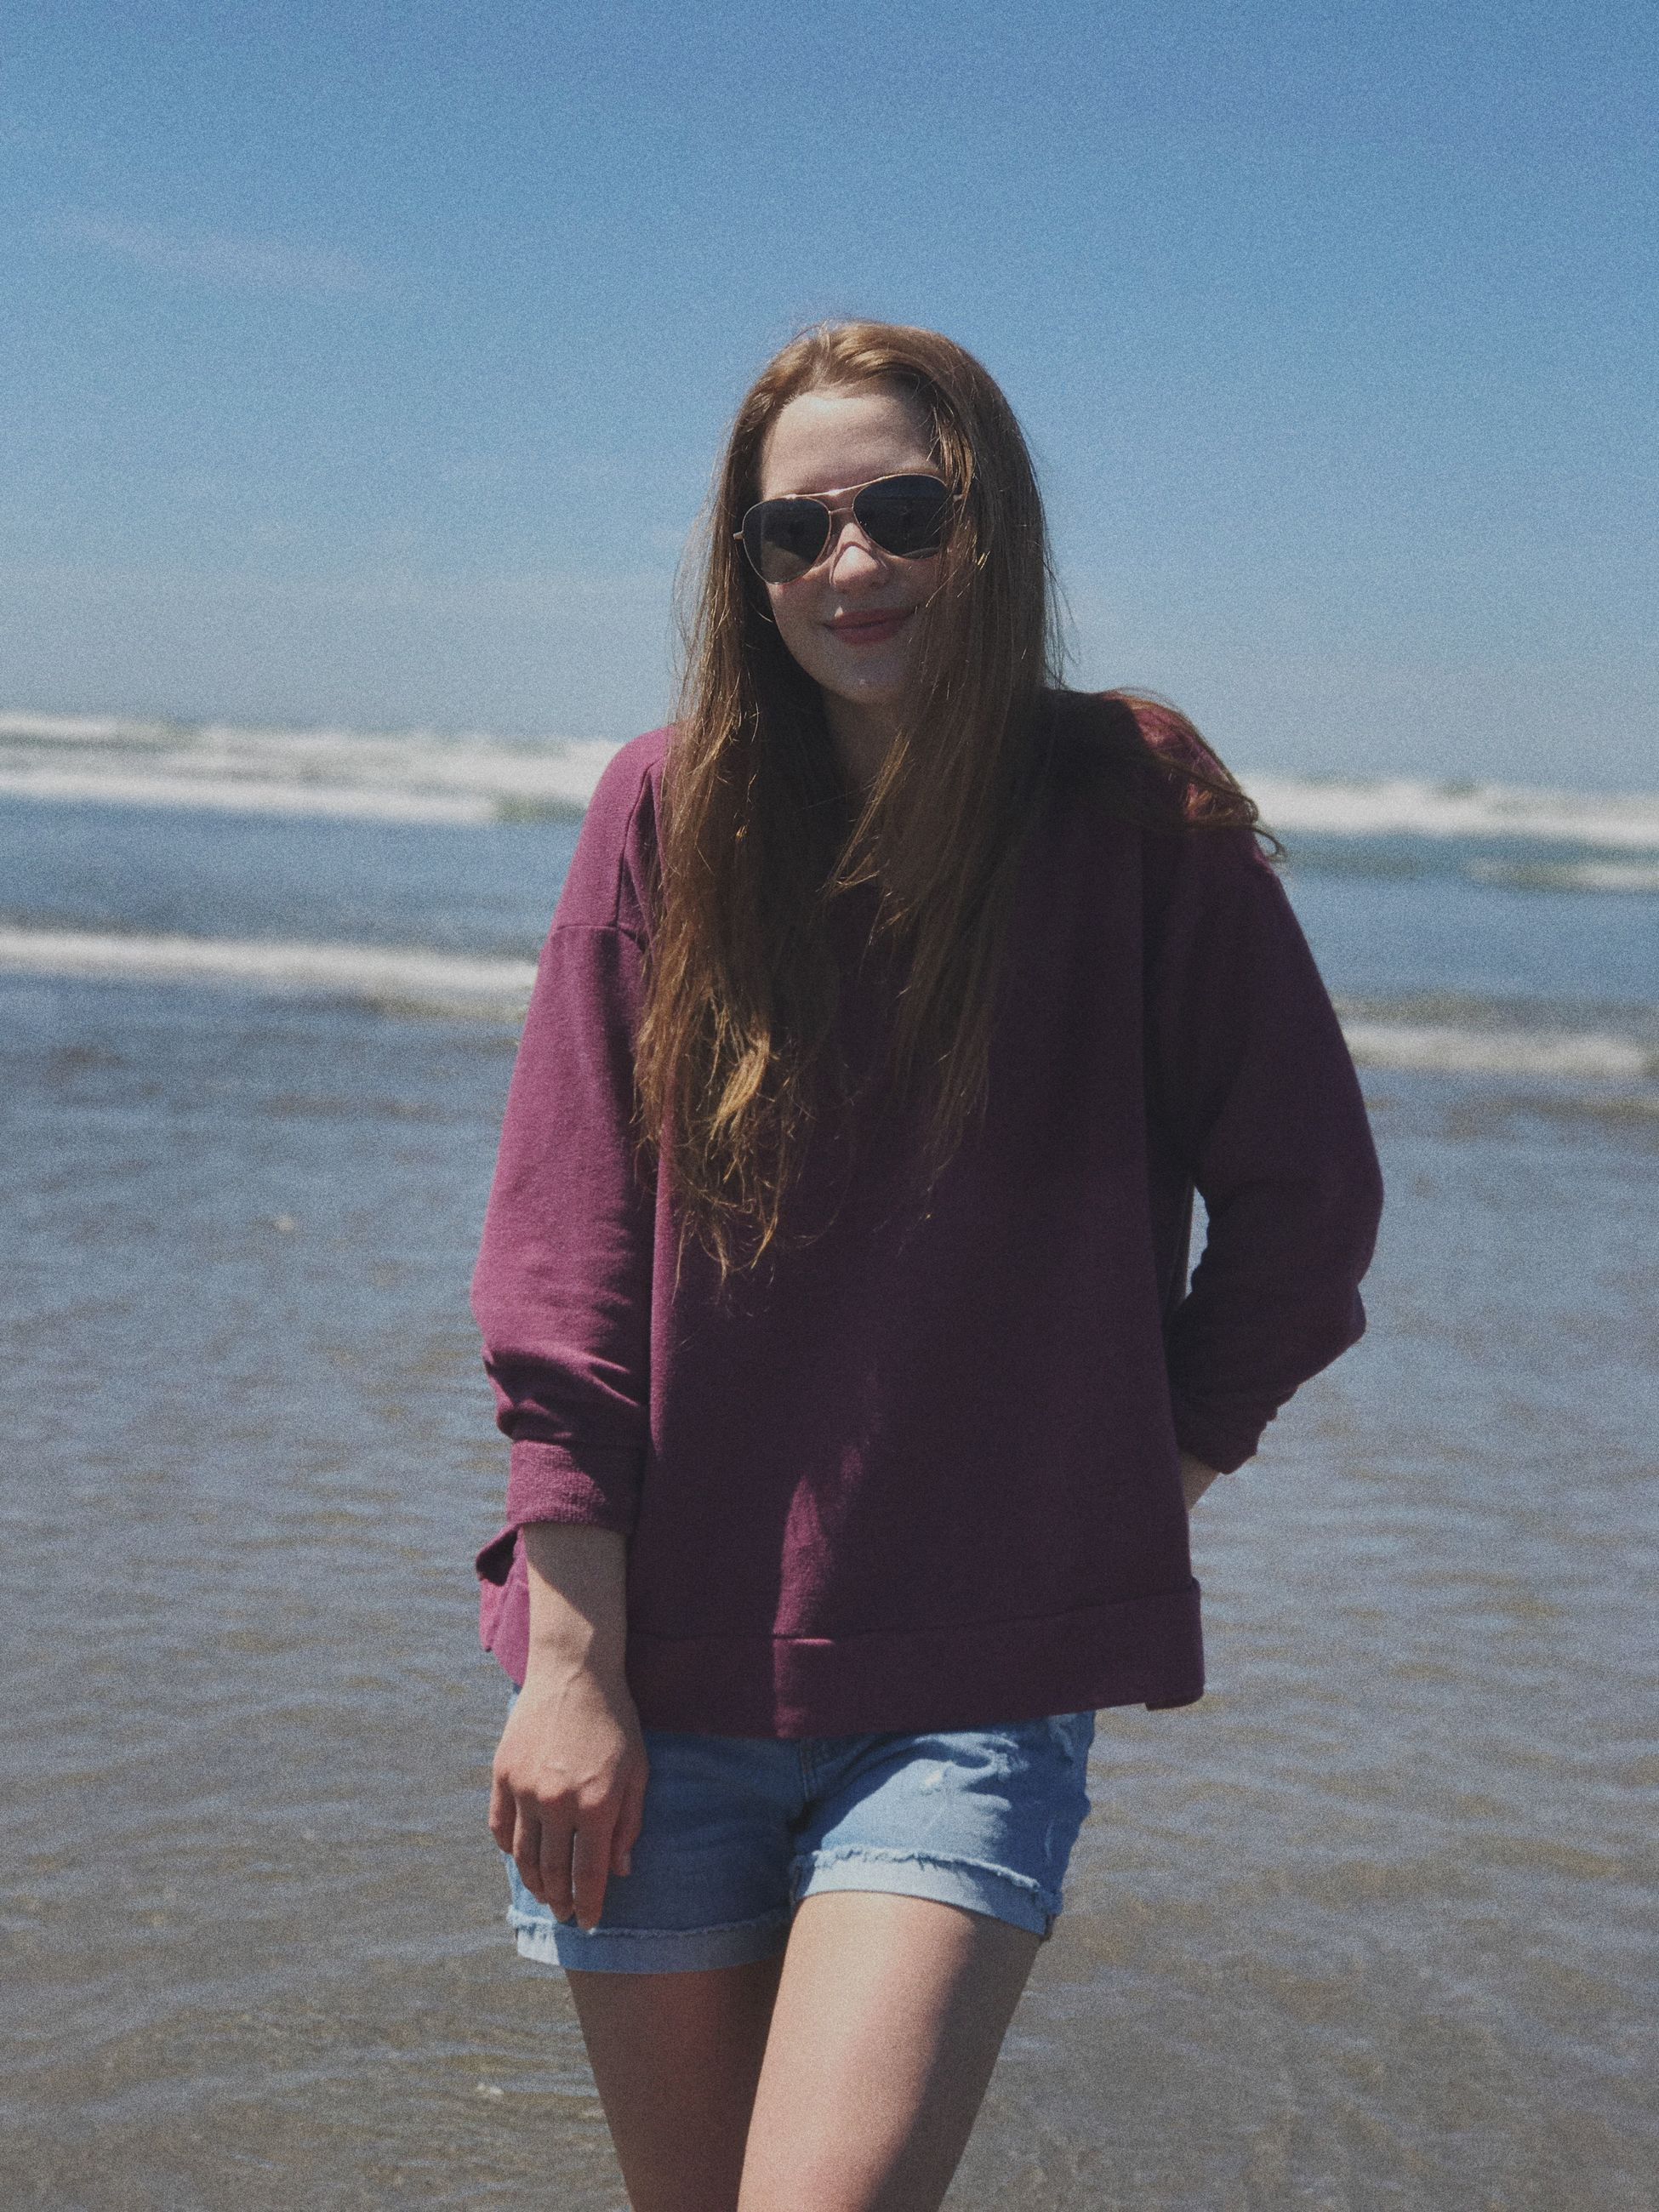 sunglasses, smiling, sea, happiness, beach, young adult, one person, water, nature, outdoors, young women, sky, day, people